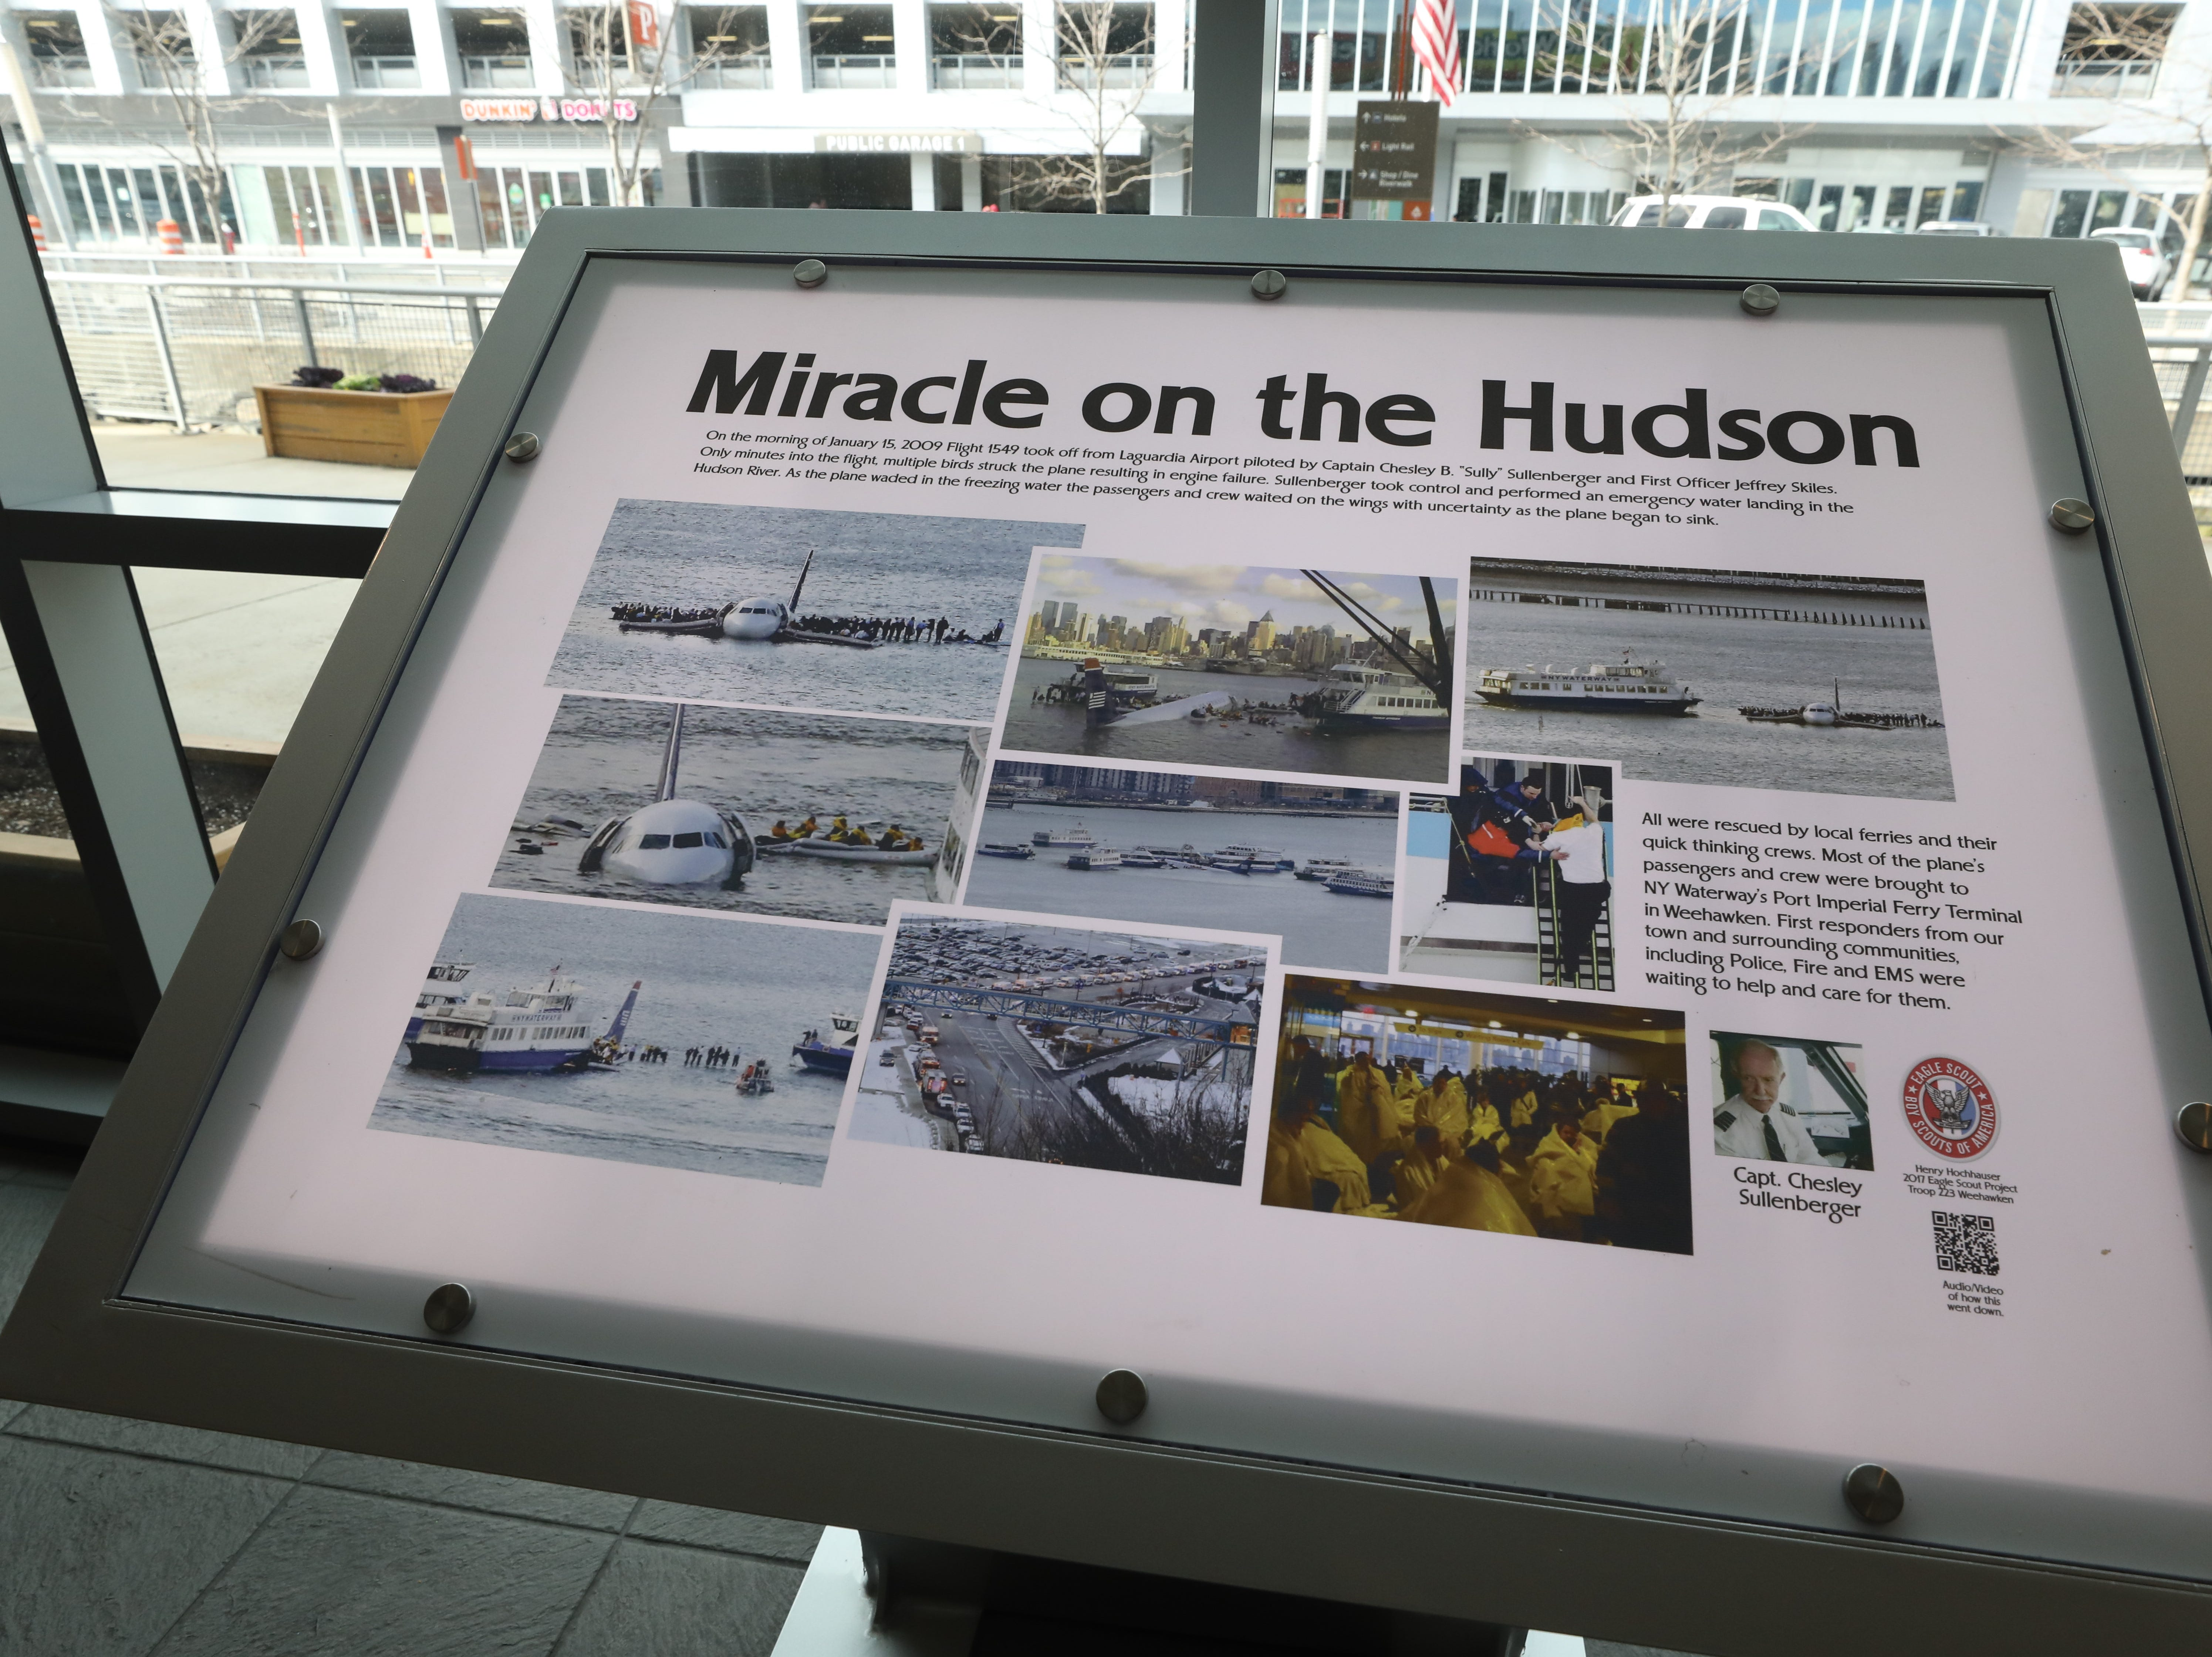 On display at the NY Waterway terminal is this display that shows photos and tells the story of the Miracle on the Hudson.